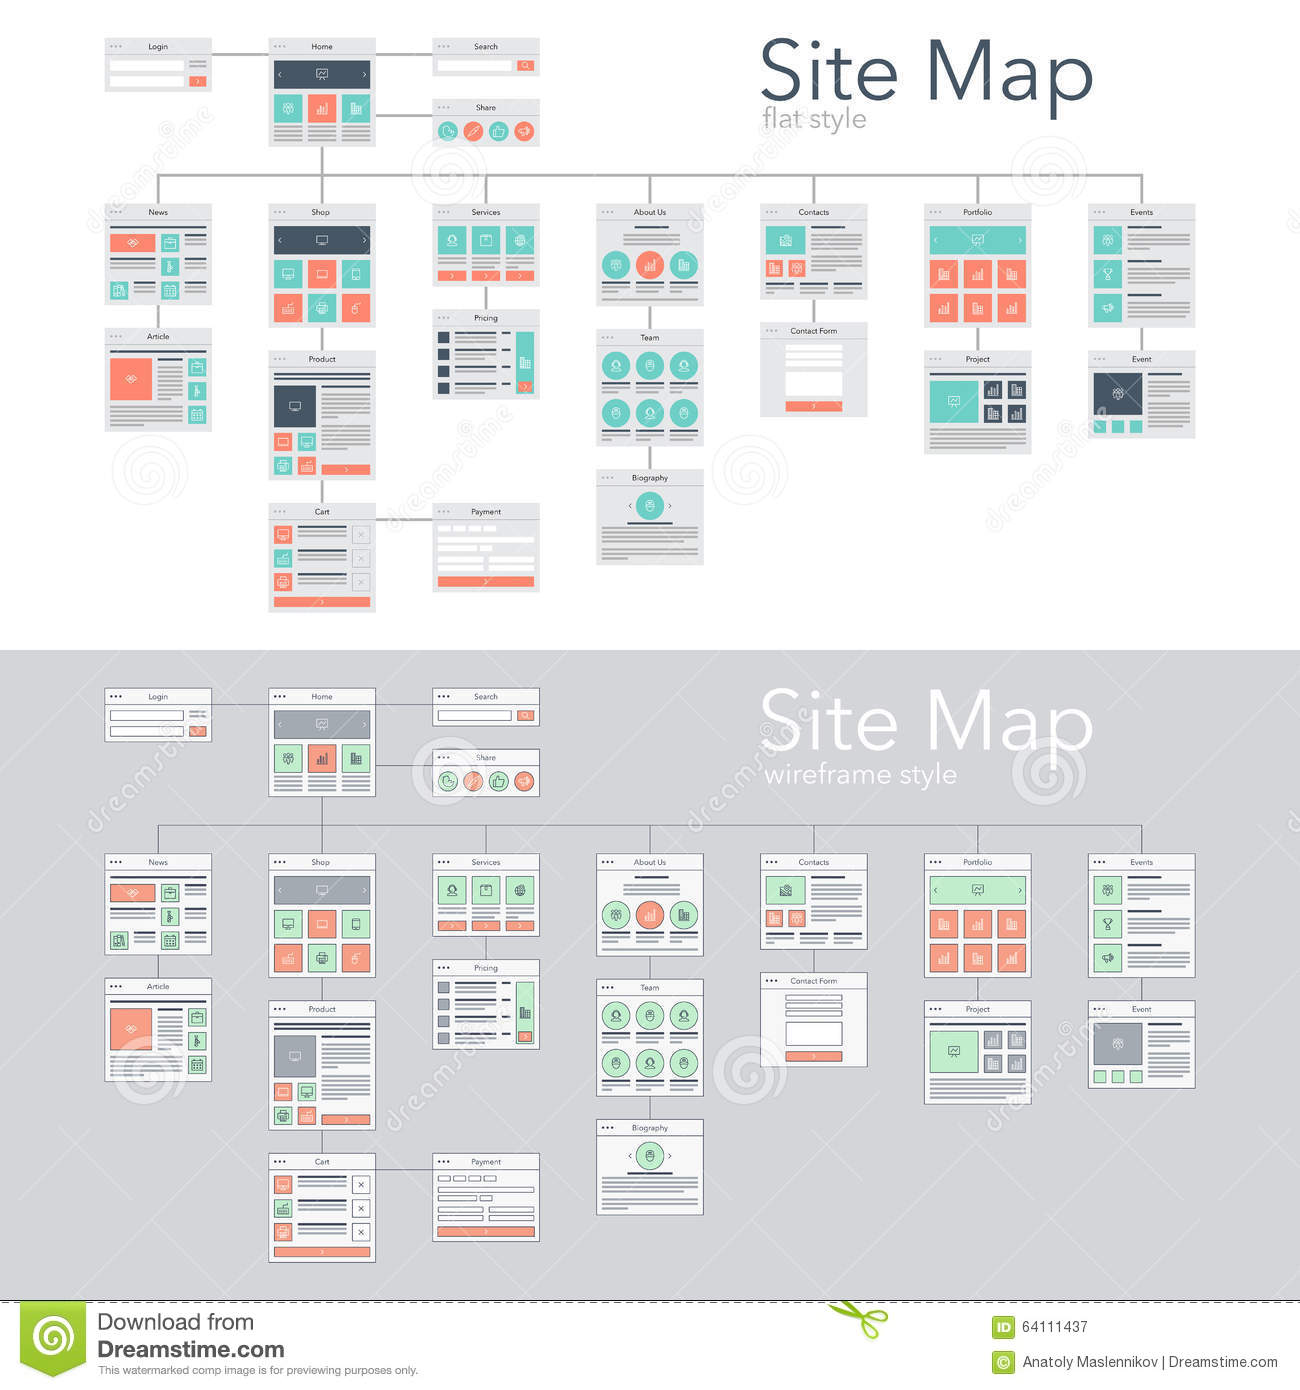 Sitemap: Site Map Stock Vector. Illustration Of Flowchart, Presentation